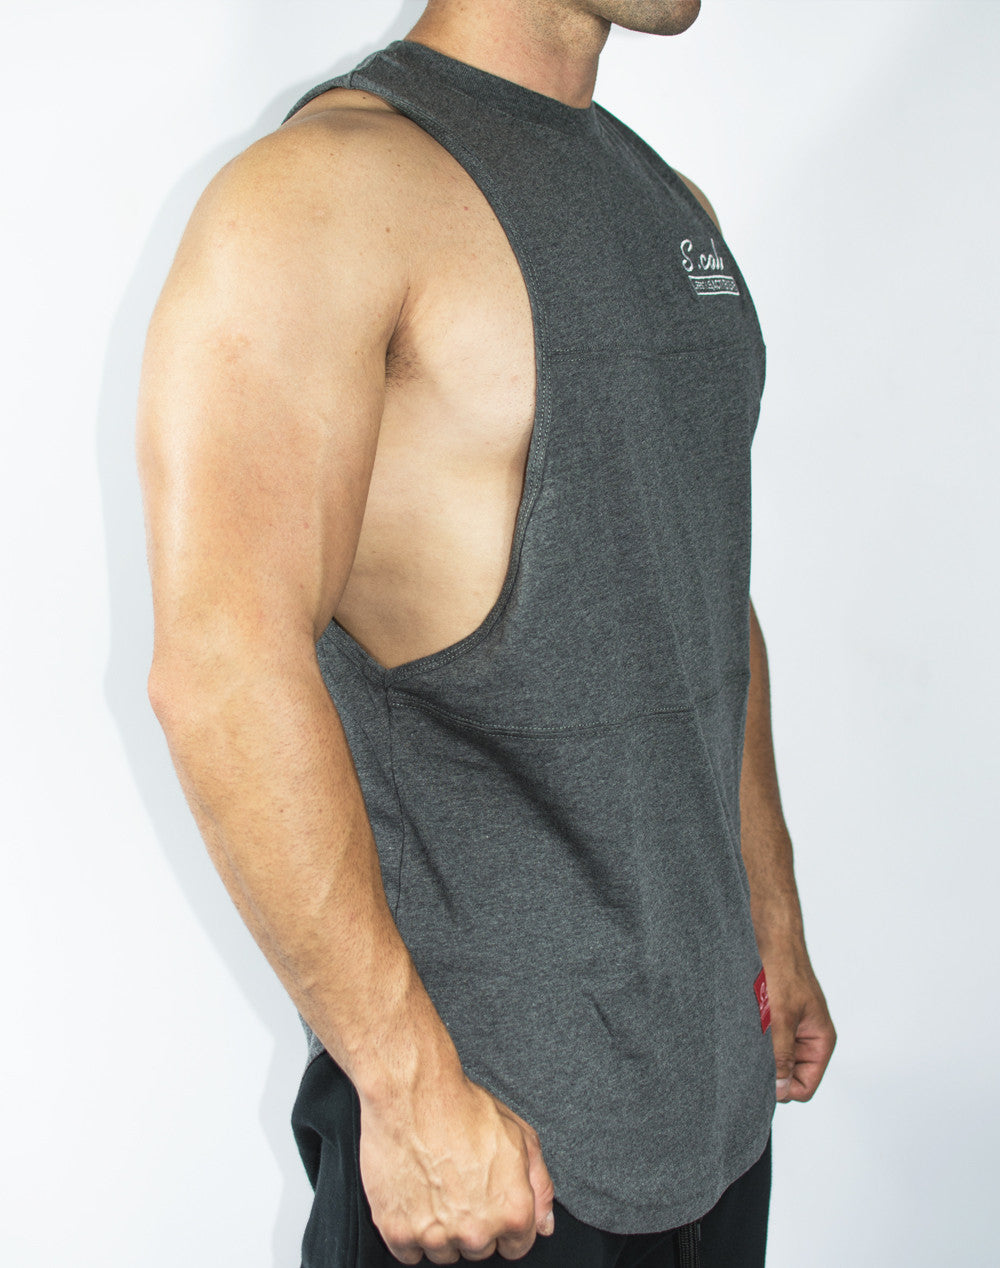 Scal Deluxe Cutoff Tee - Charcoal Grey - Scal Clothing - 2